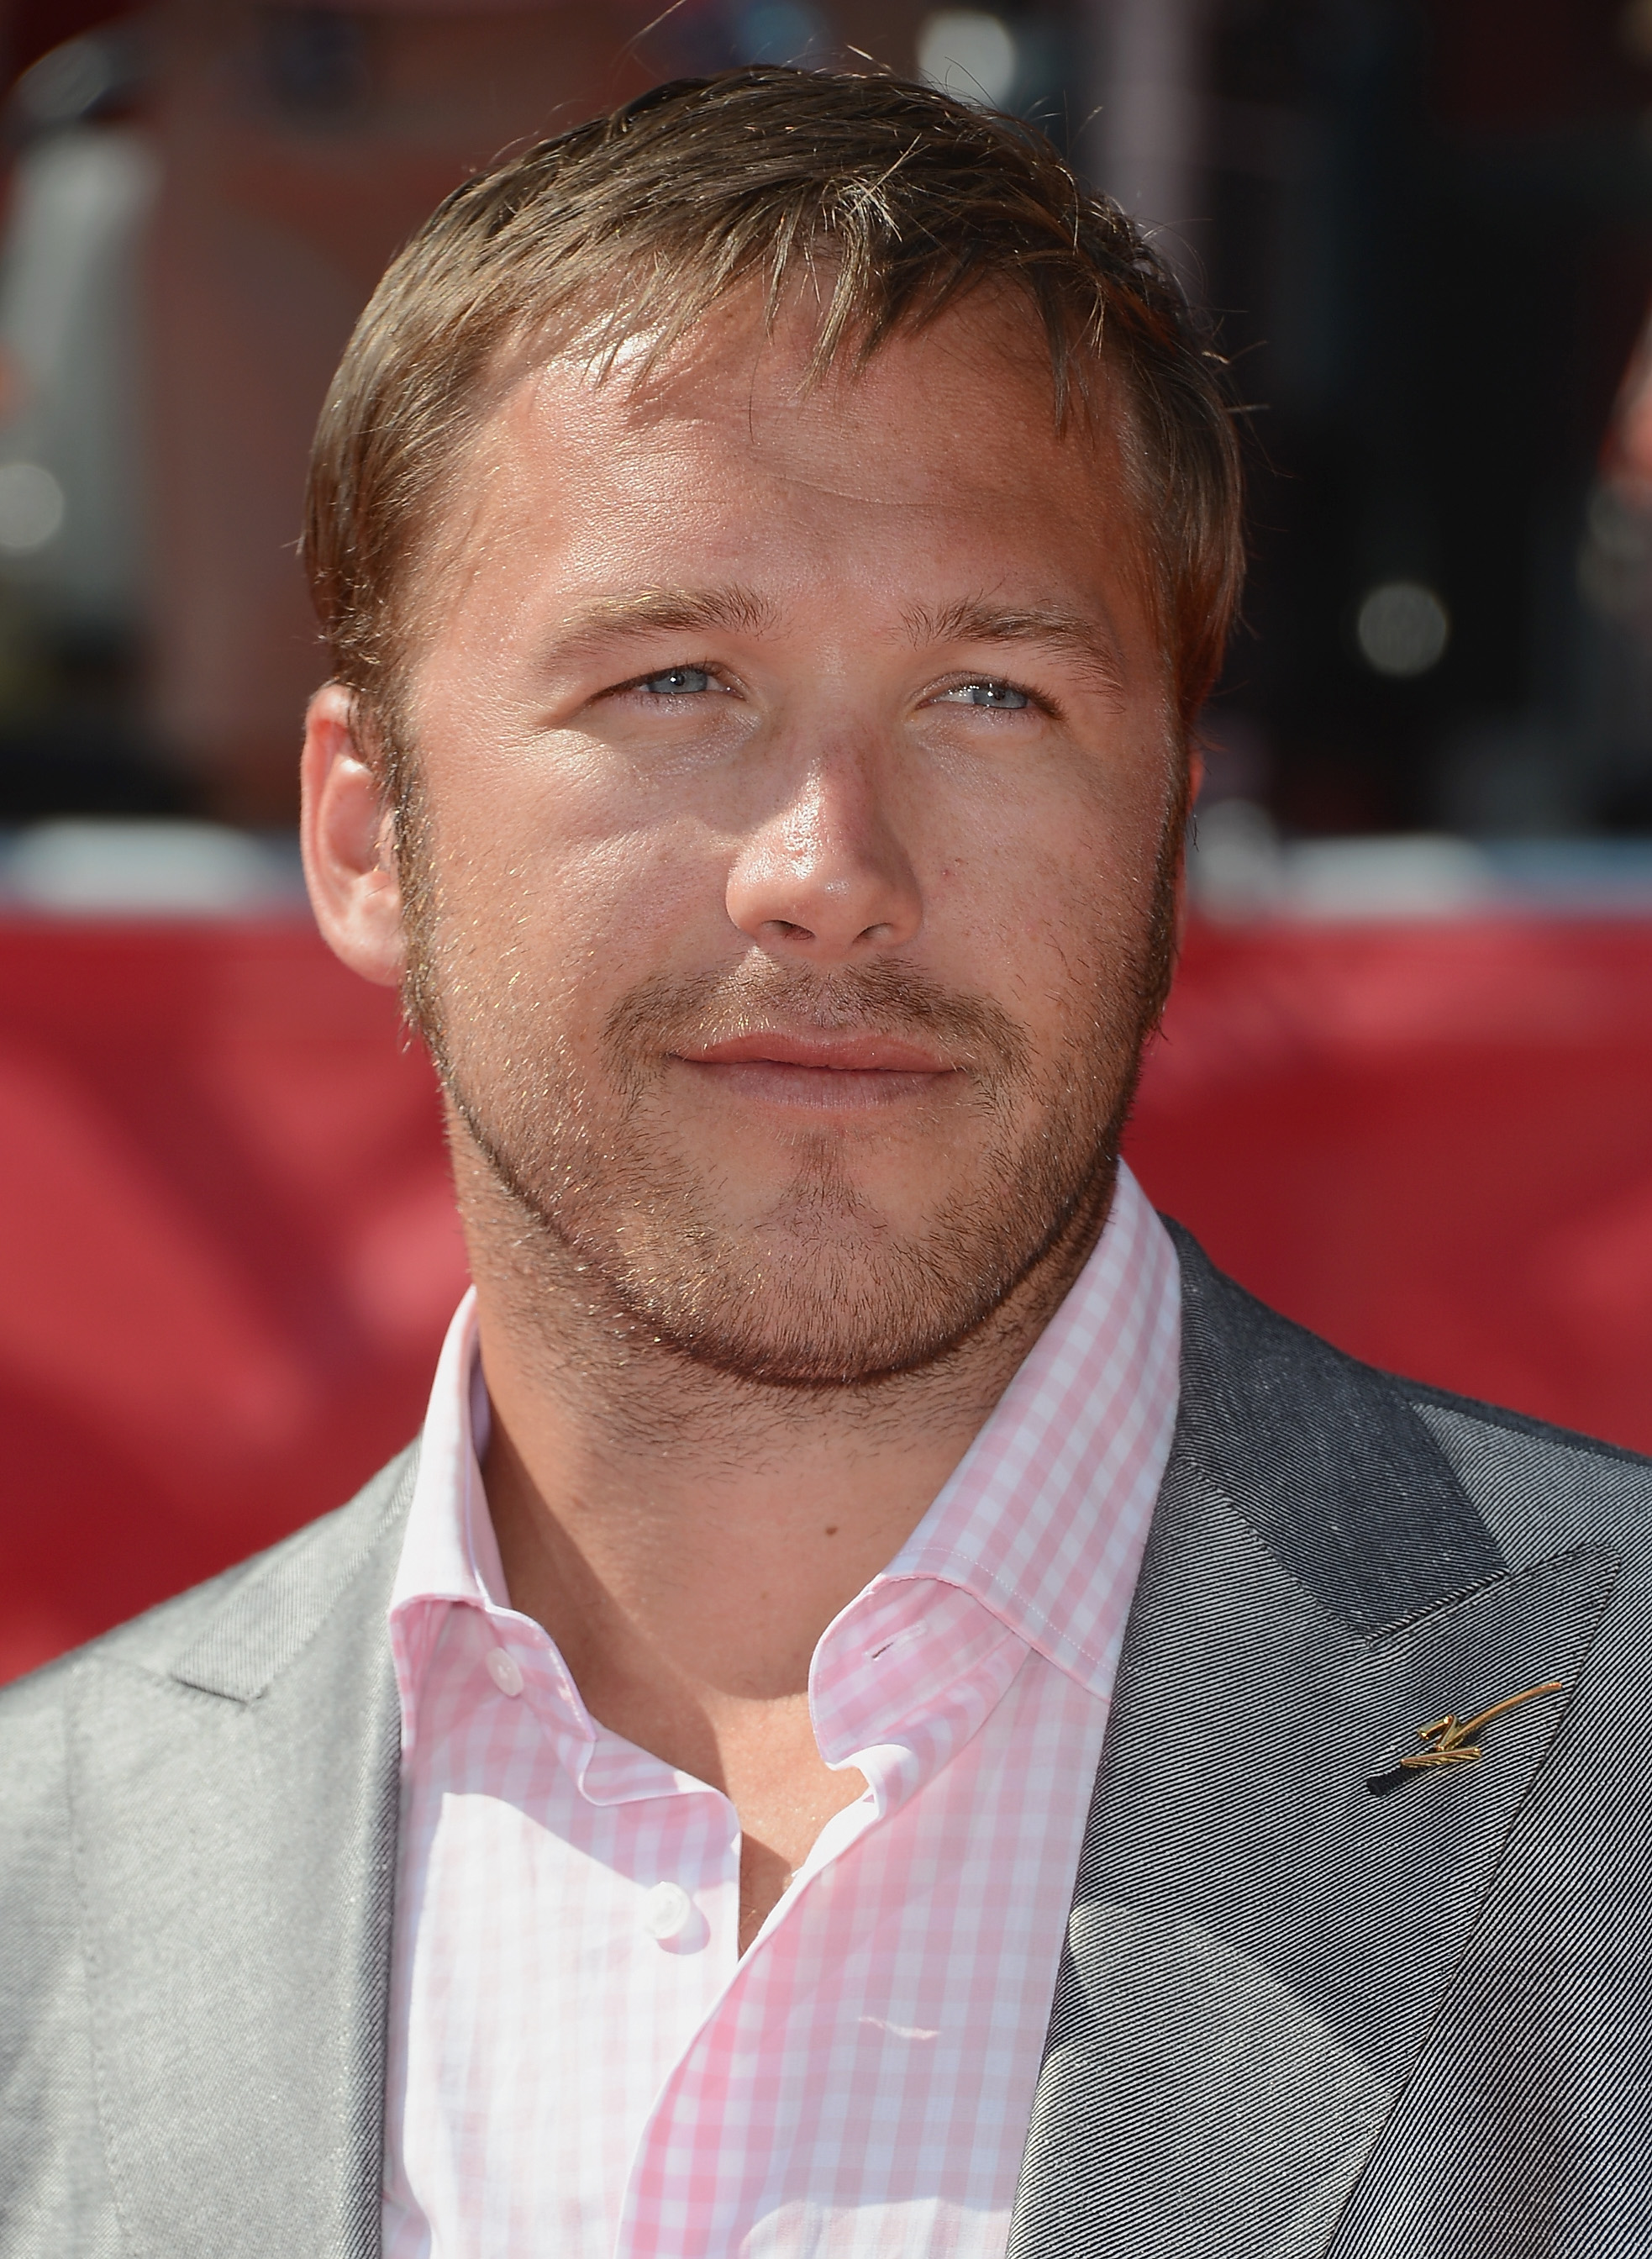 bode guys Olympic skier bode miller has a new training regimen, which includes work as a shirtless back waxer and naked sprints through the streets of new york watch it, after the jump.